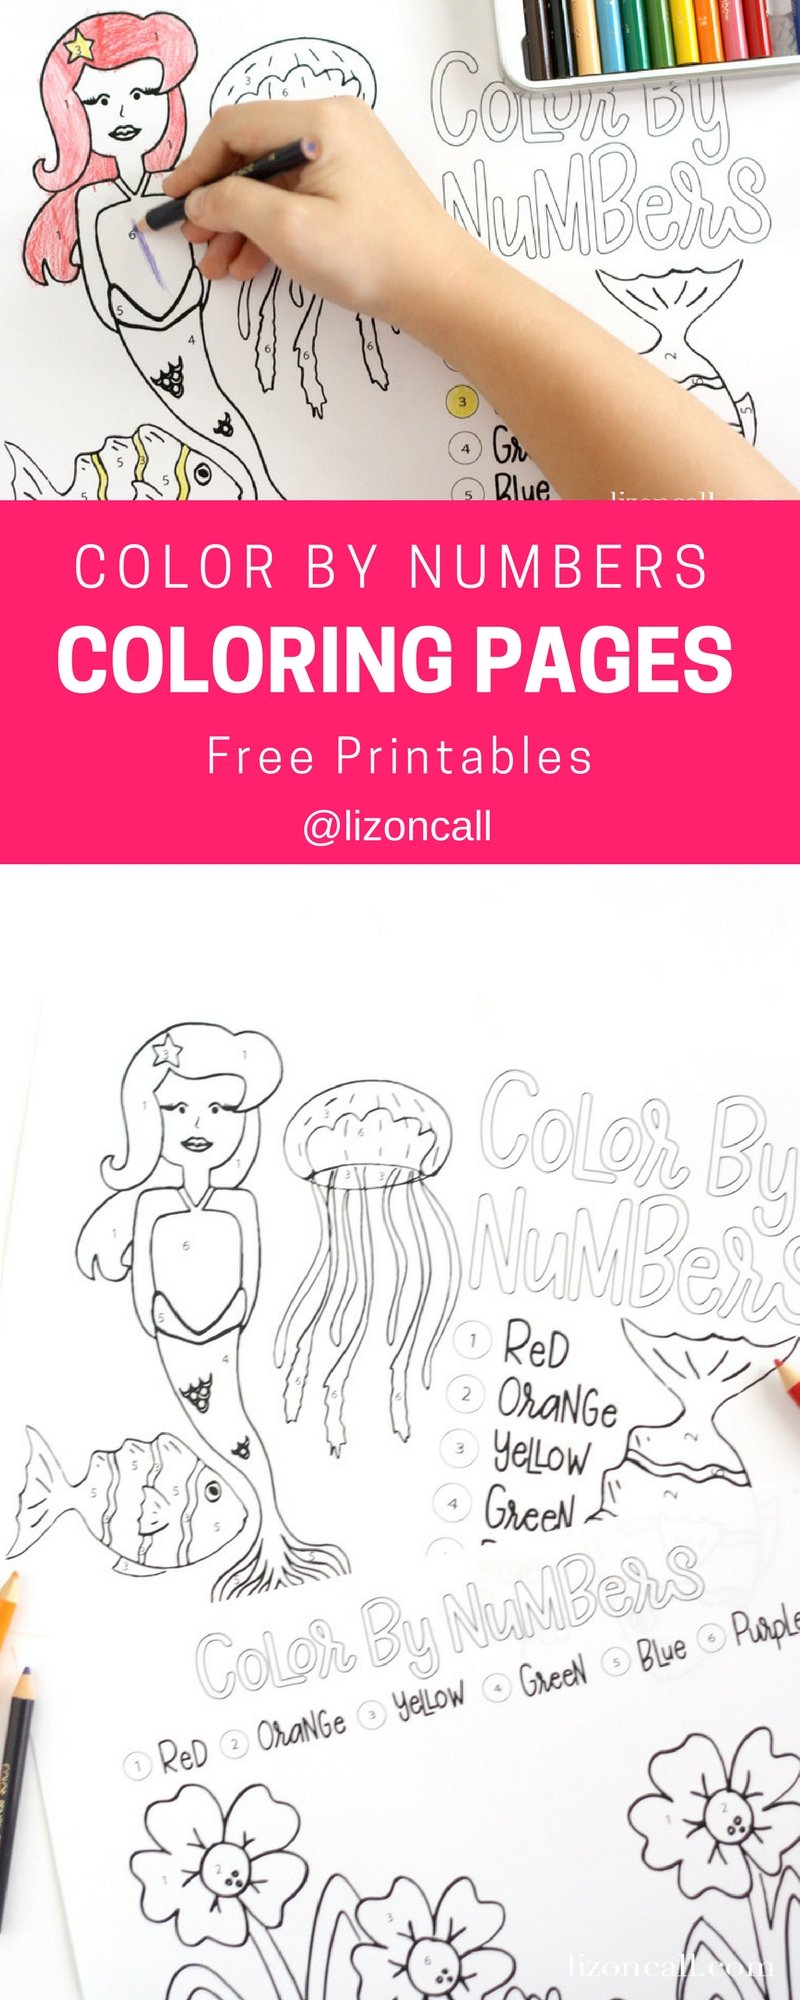 Are the kids bored this summer? These color by number printables are a perfect activity to keep the kids (and maybe mom) entertained during those long summer days.